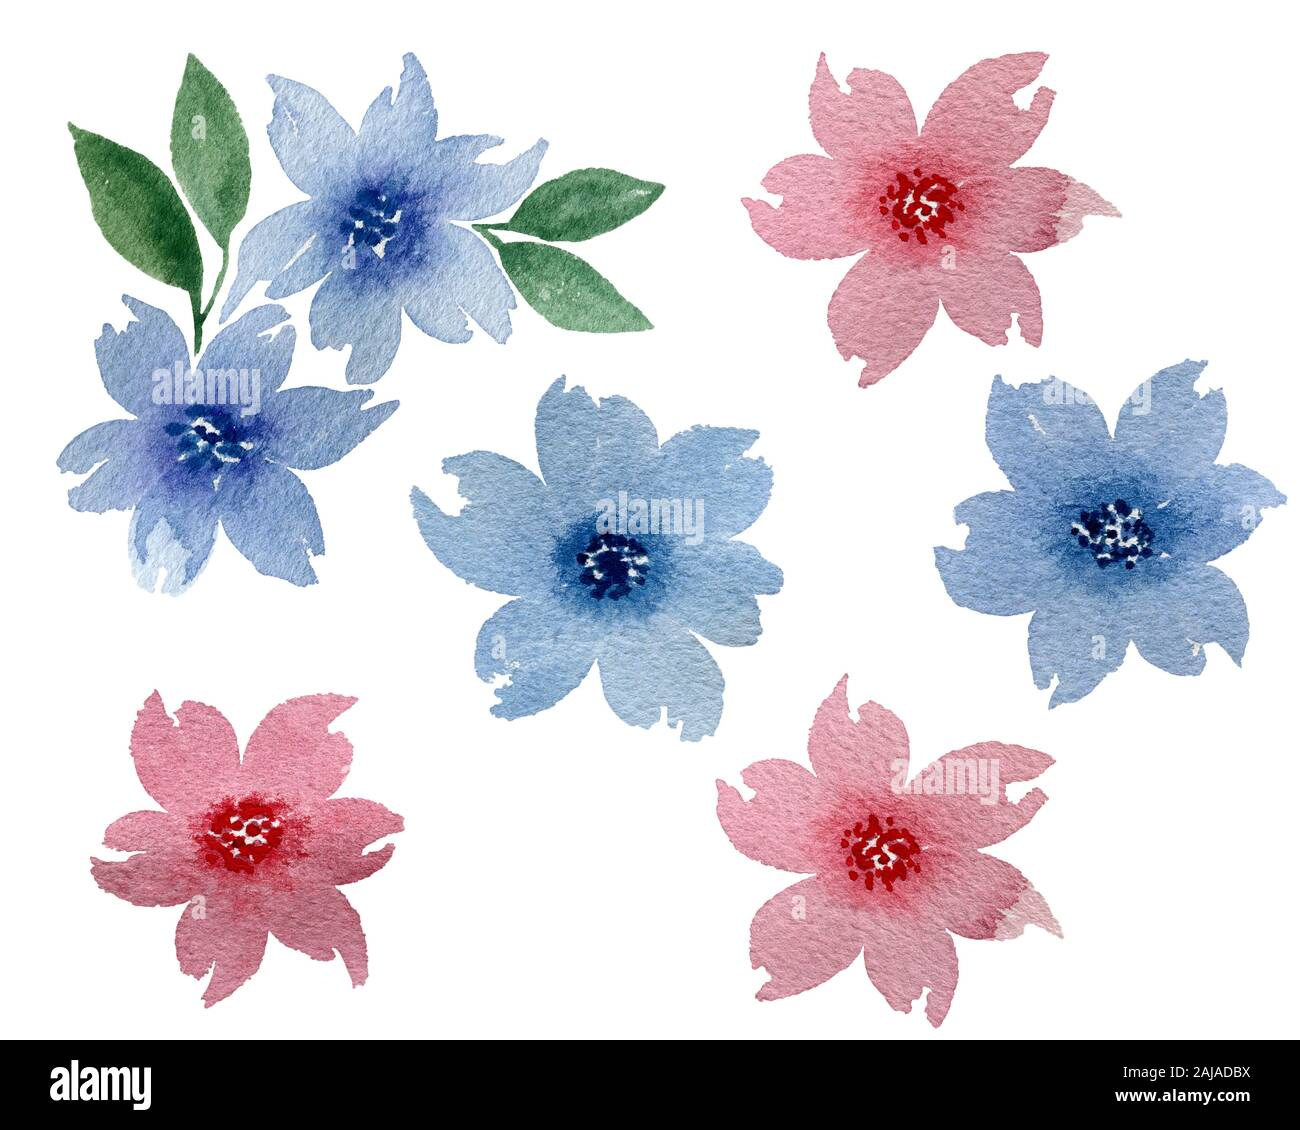 Floral Background Watercolor Floral Design Elements Isolated On